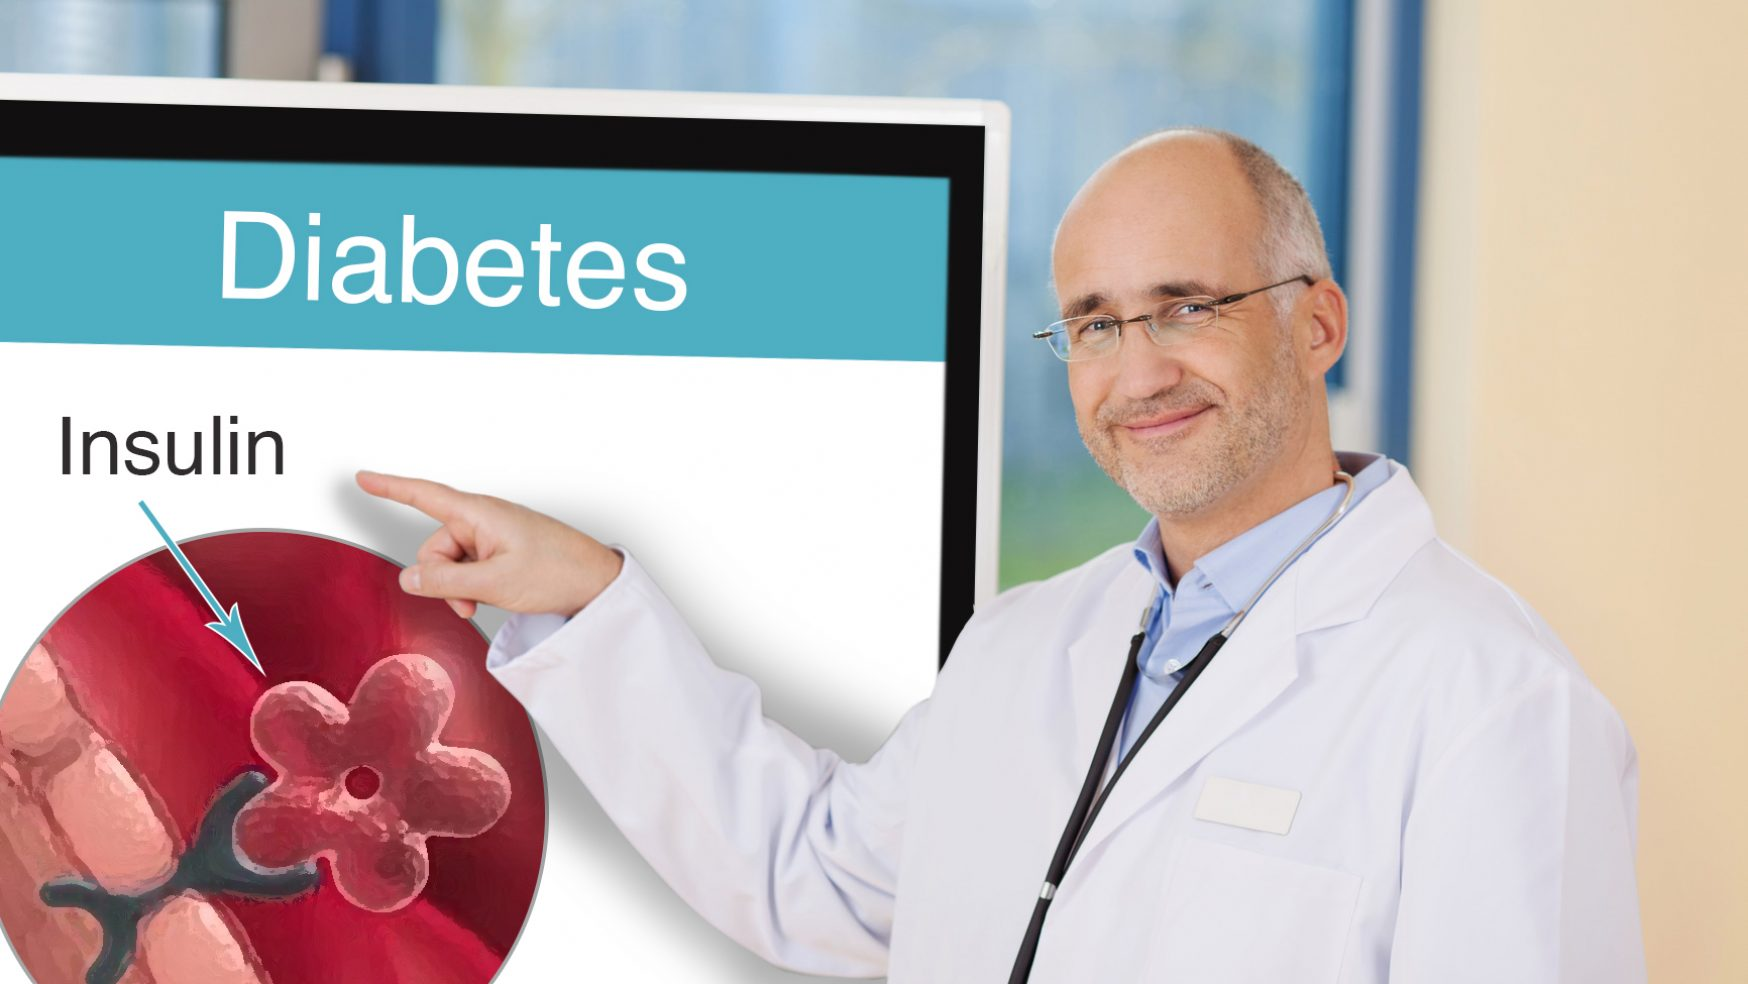 76th Diabetes Annual Scientific Session offered by the American Diabetes Association will be held on June 10, 2016